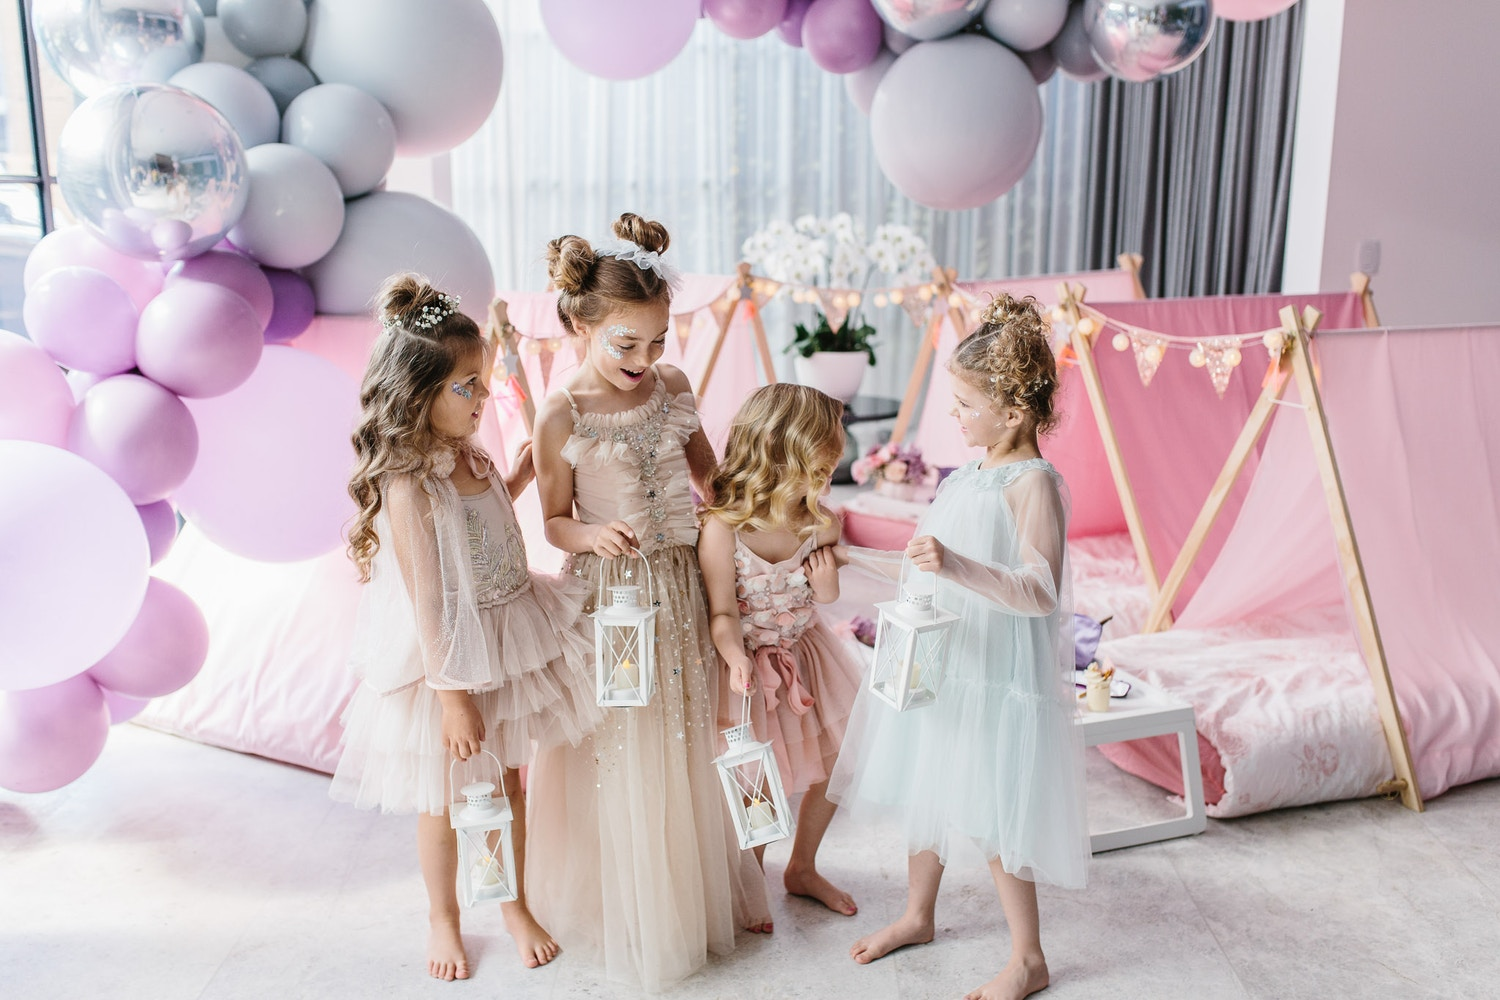 KIDS PARTY IDEAS: HOW TO PLAN A KID'S BIRTHDAY